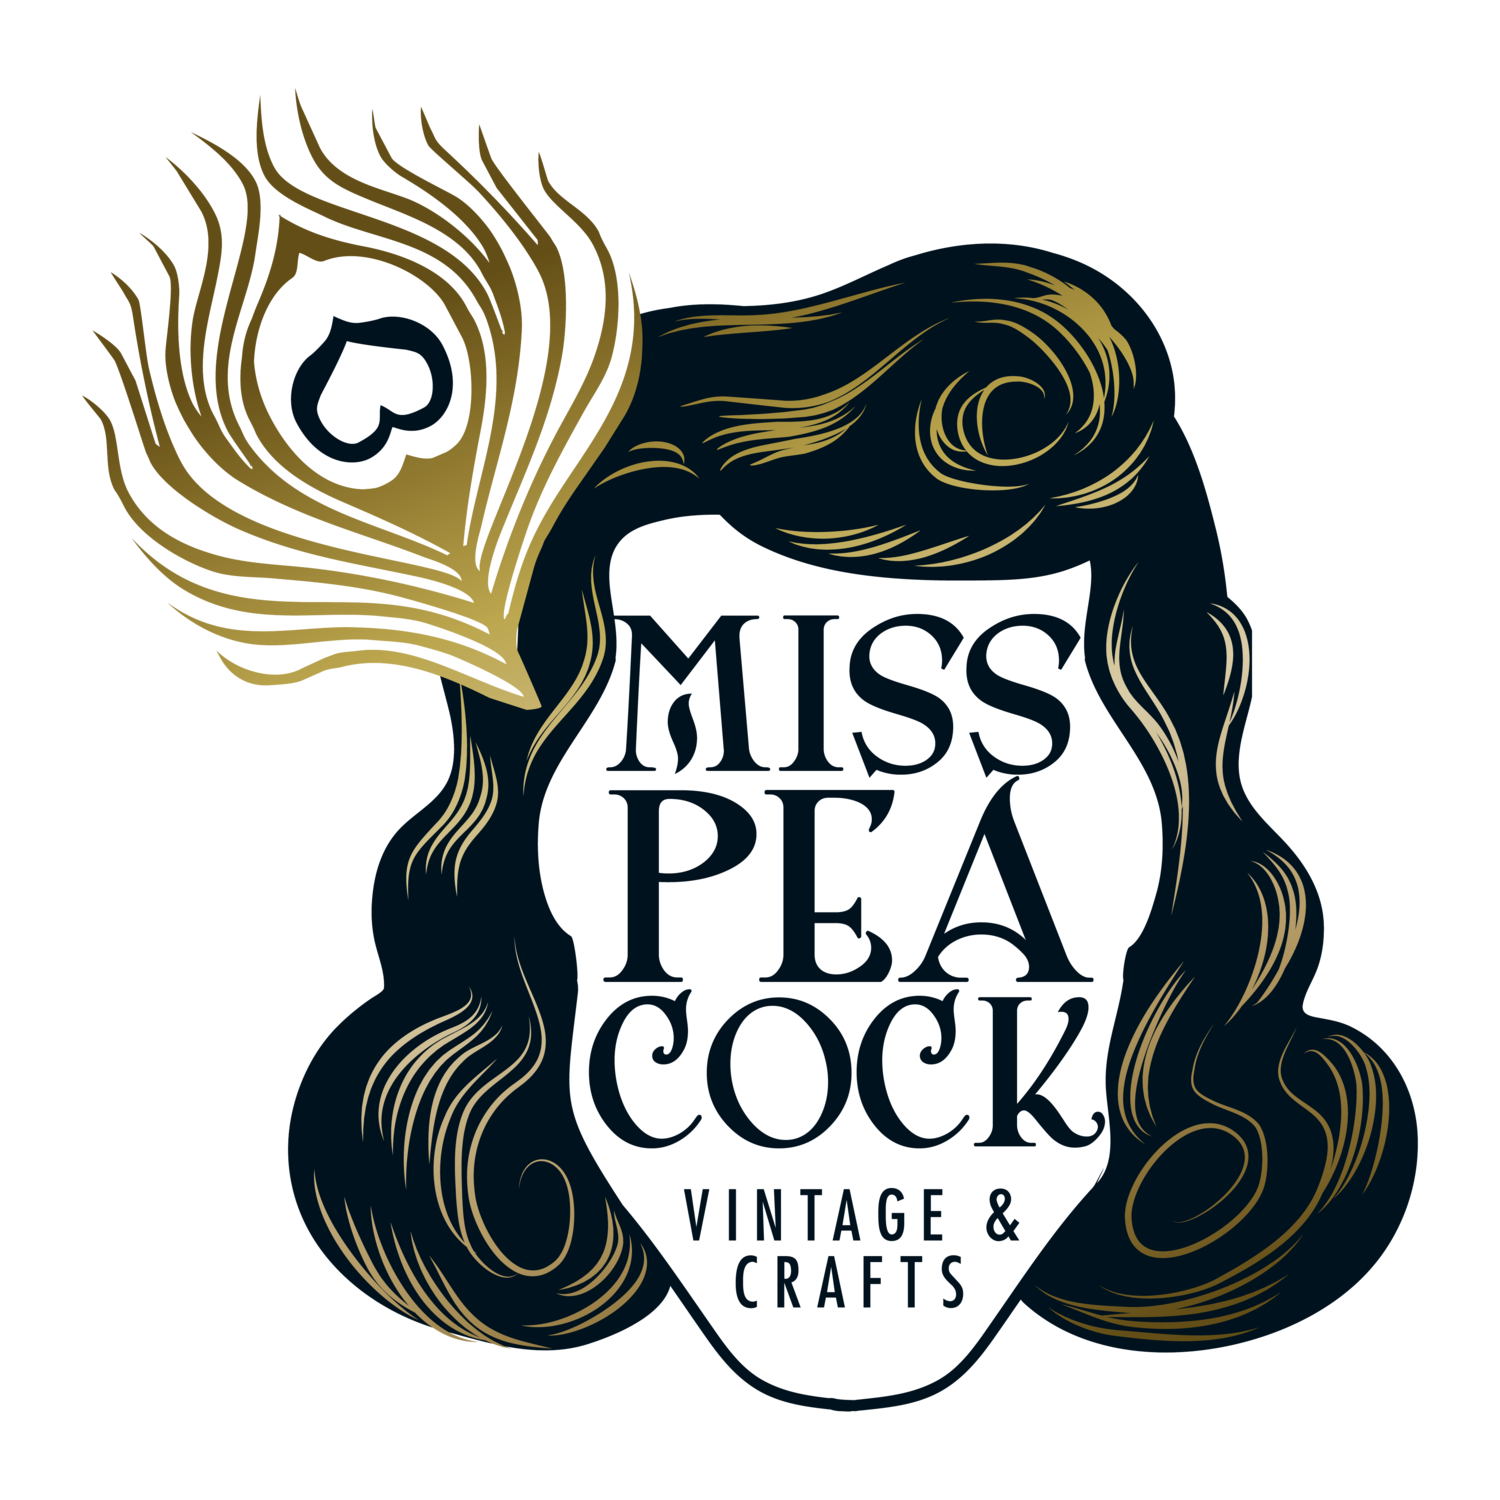 Miss Peacock